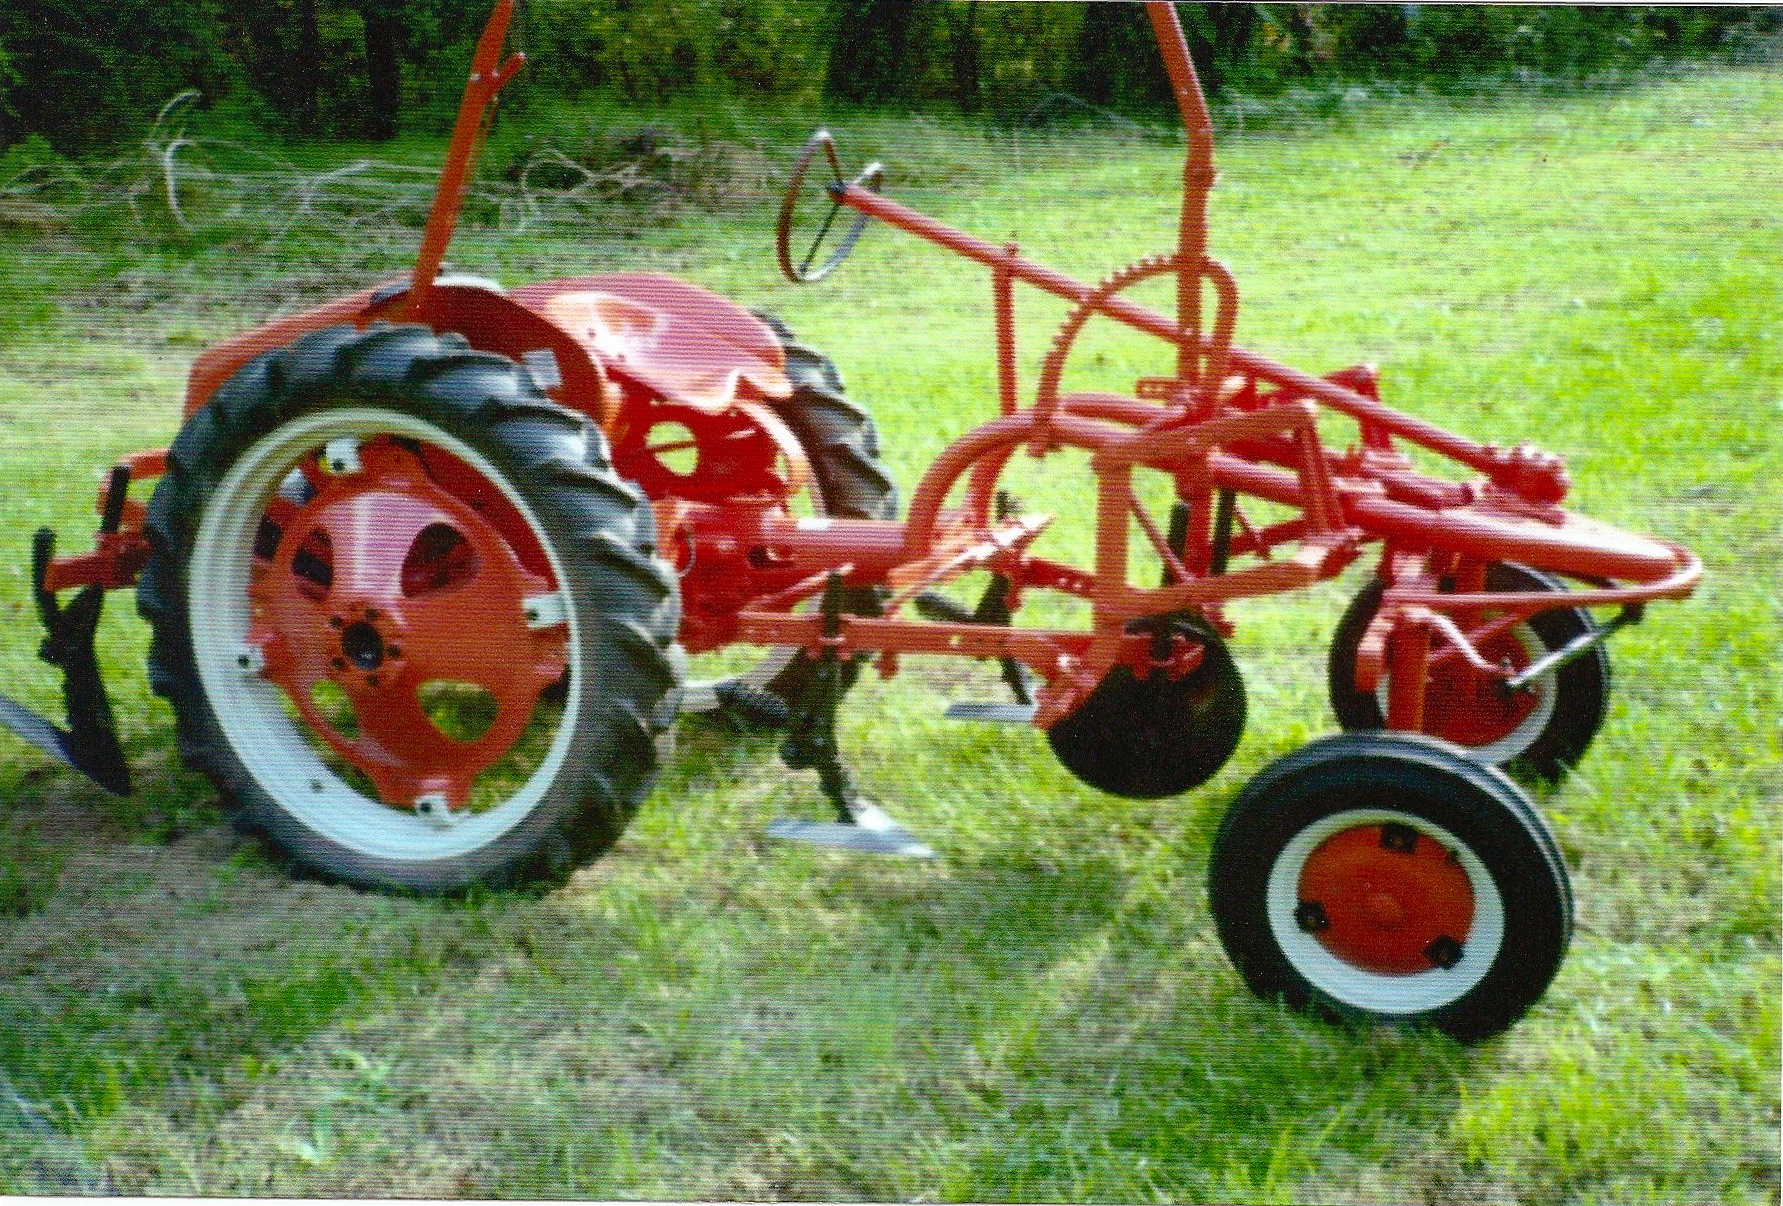 Allis Chalmers G Tractor : Tractor story allis chalmer g antique